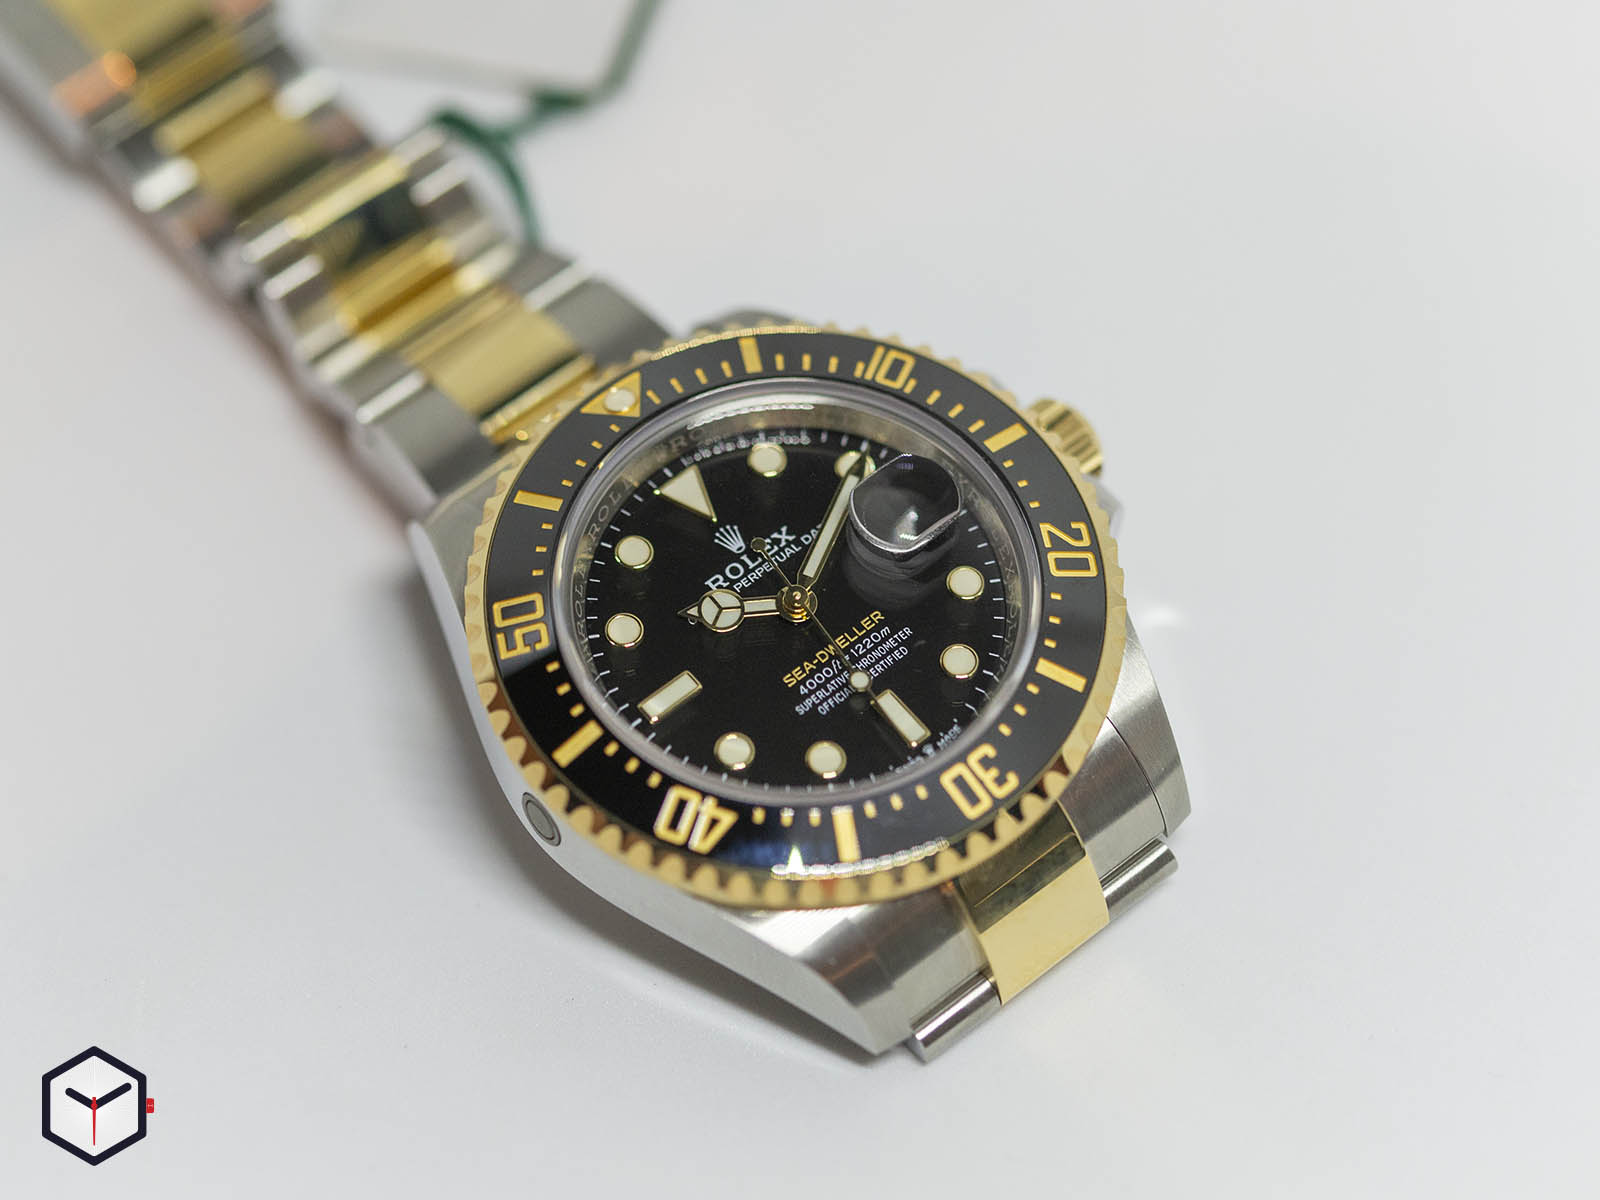 126603-rolex-sea-dweller-two-tone-baselworld-2019-2.jpg